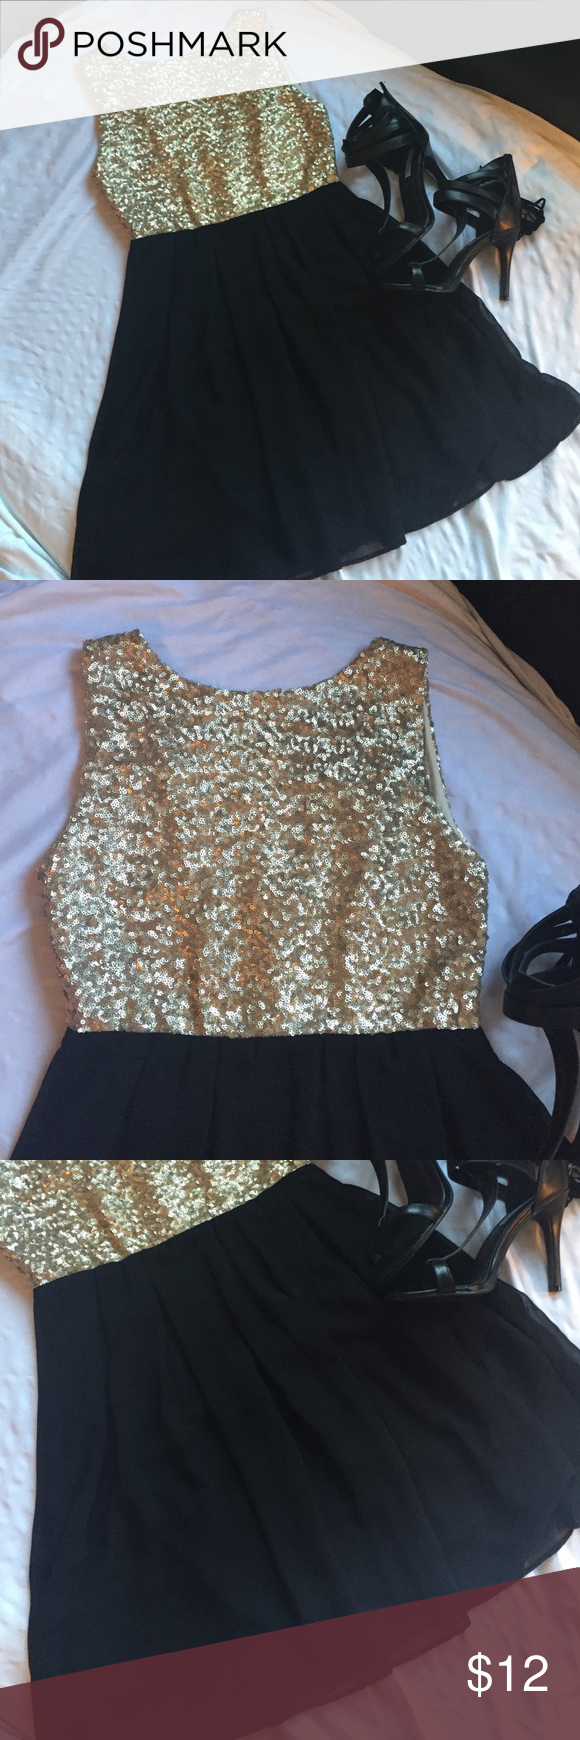 Gold sequined black party dress Adorable dress with gold sequins. I absolutely love this dress. I love the Low back and the dark zipper paired with the light gold color. It's in great condition. I wore once for an event. Size XS. TFNC London brand. Bundle to save. Dresses Mini